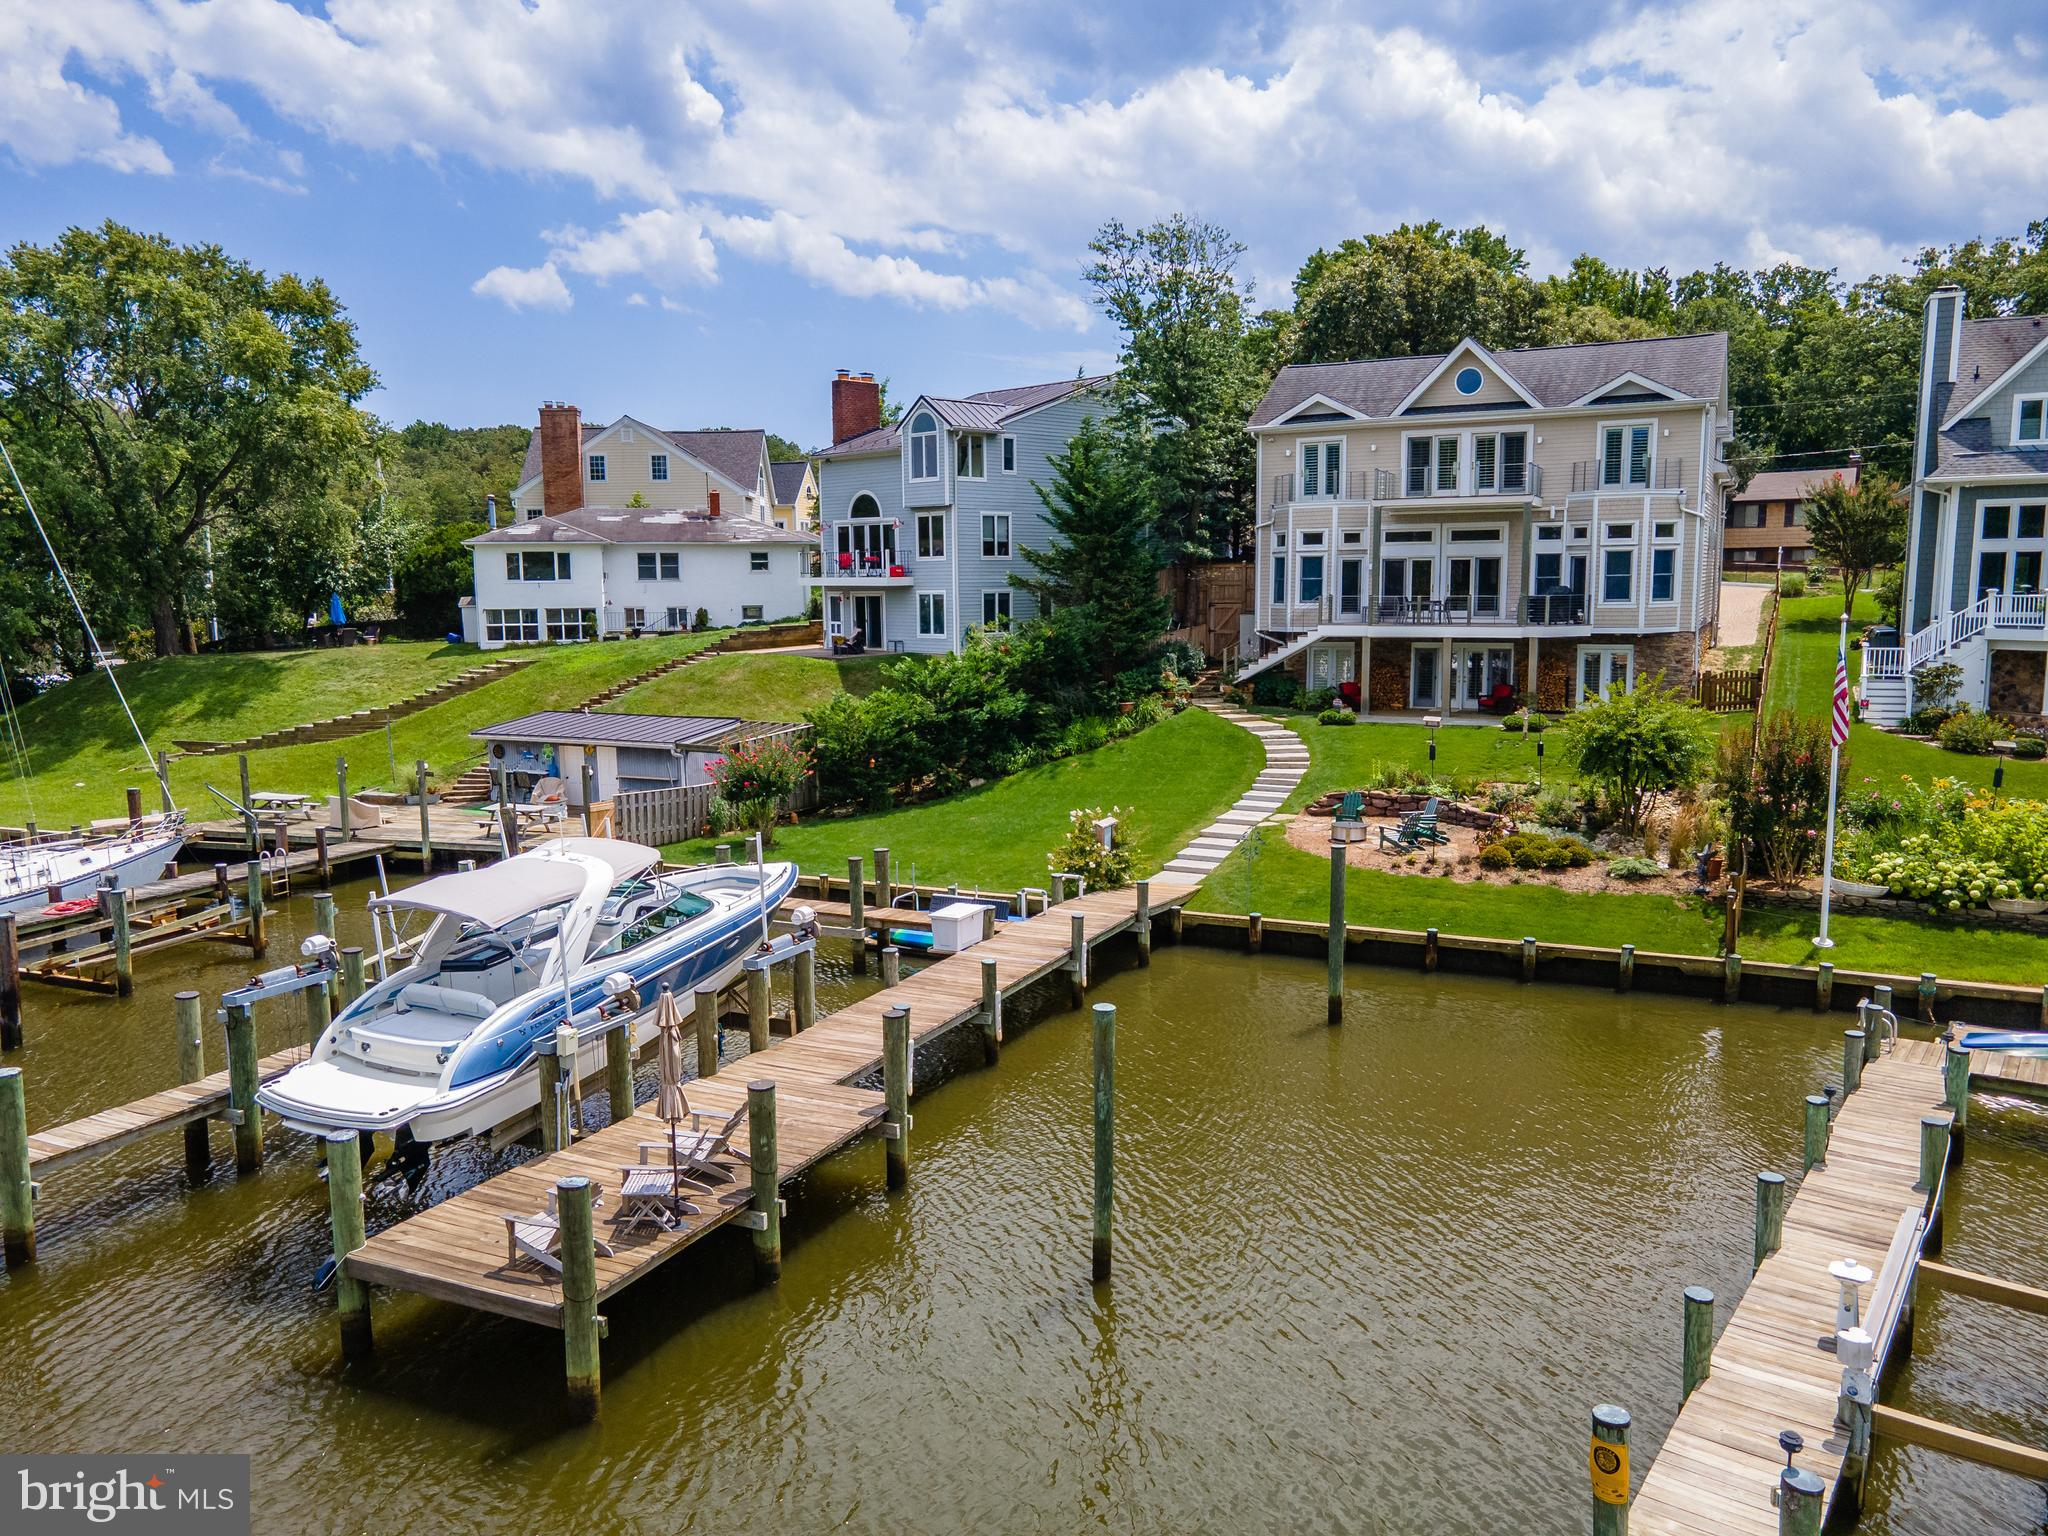 145 Spa Dr, Annapolis, MD, 21403